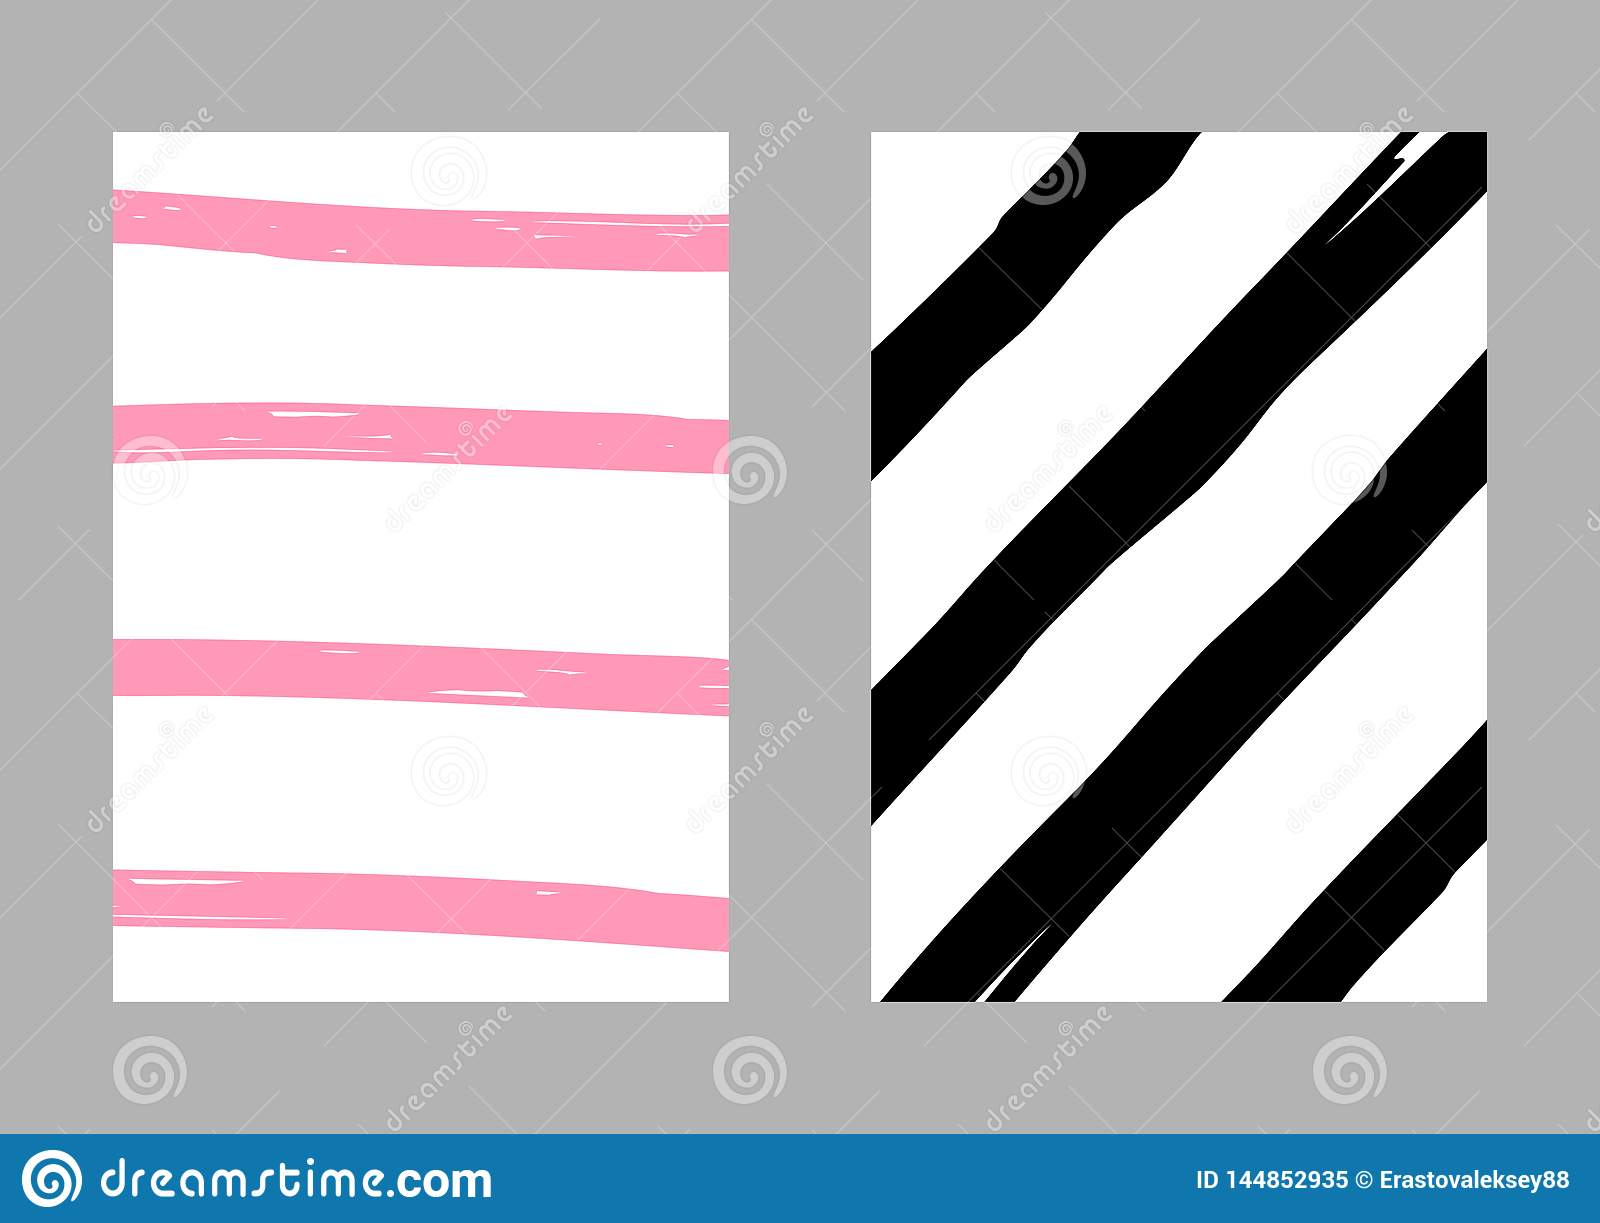 Set of two vertical  striped templates drawn by hand. Sketch, grunge, paint. Vector illustration. White, pink, black.